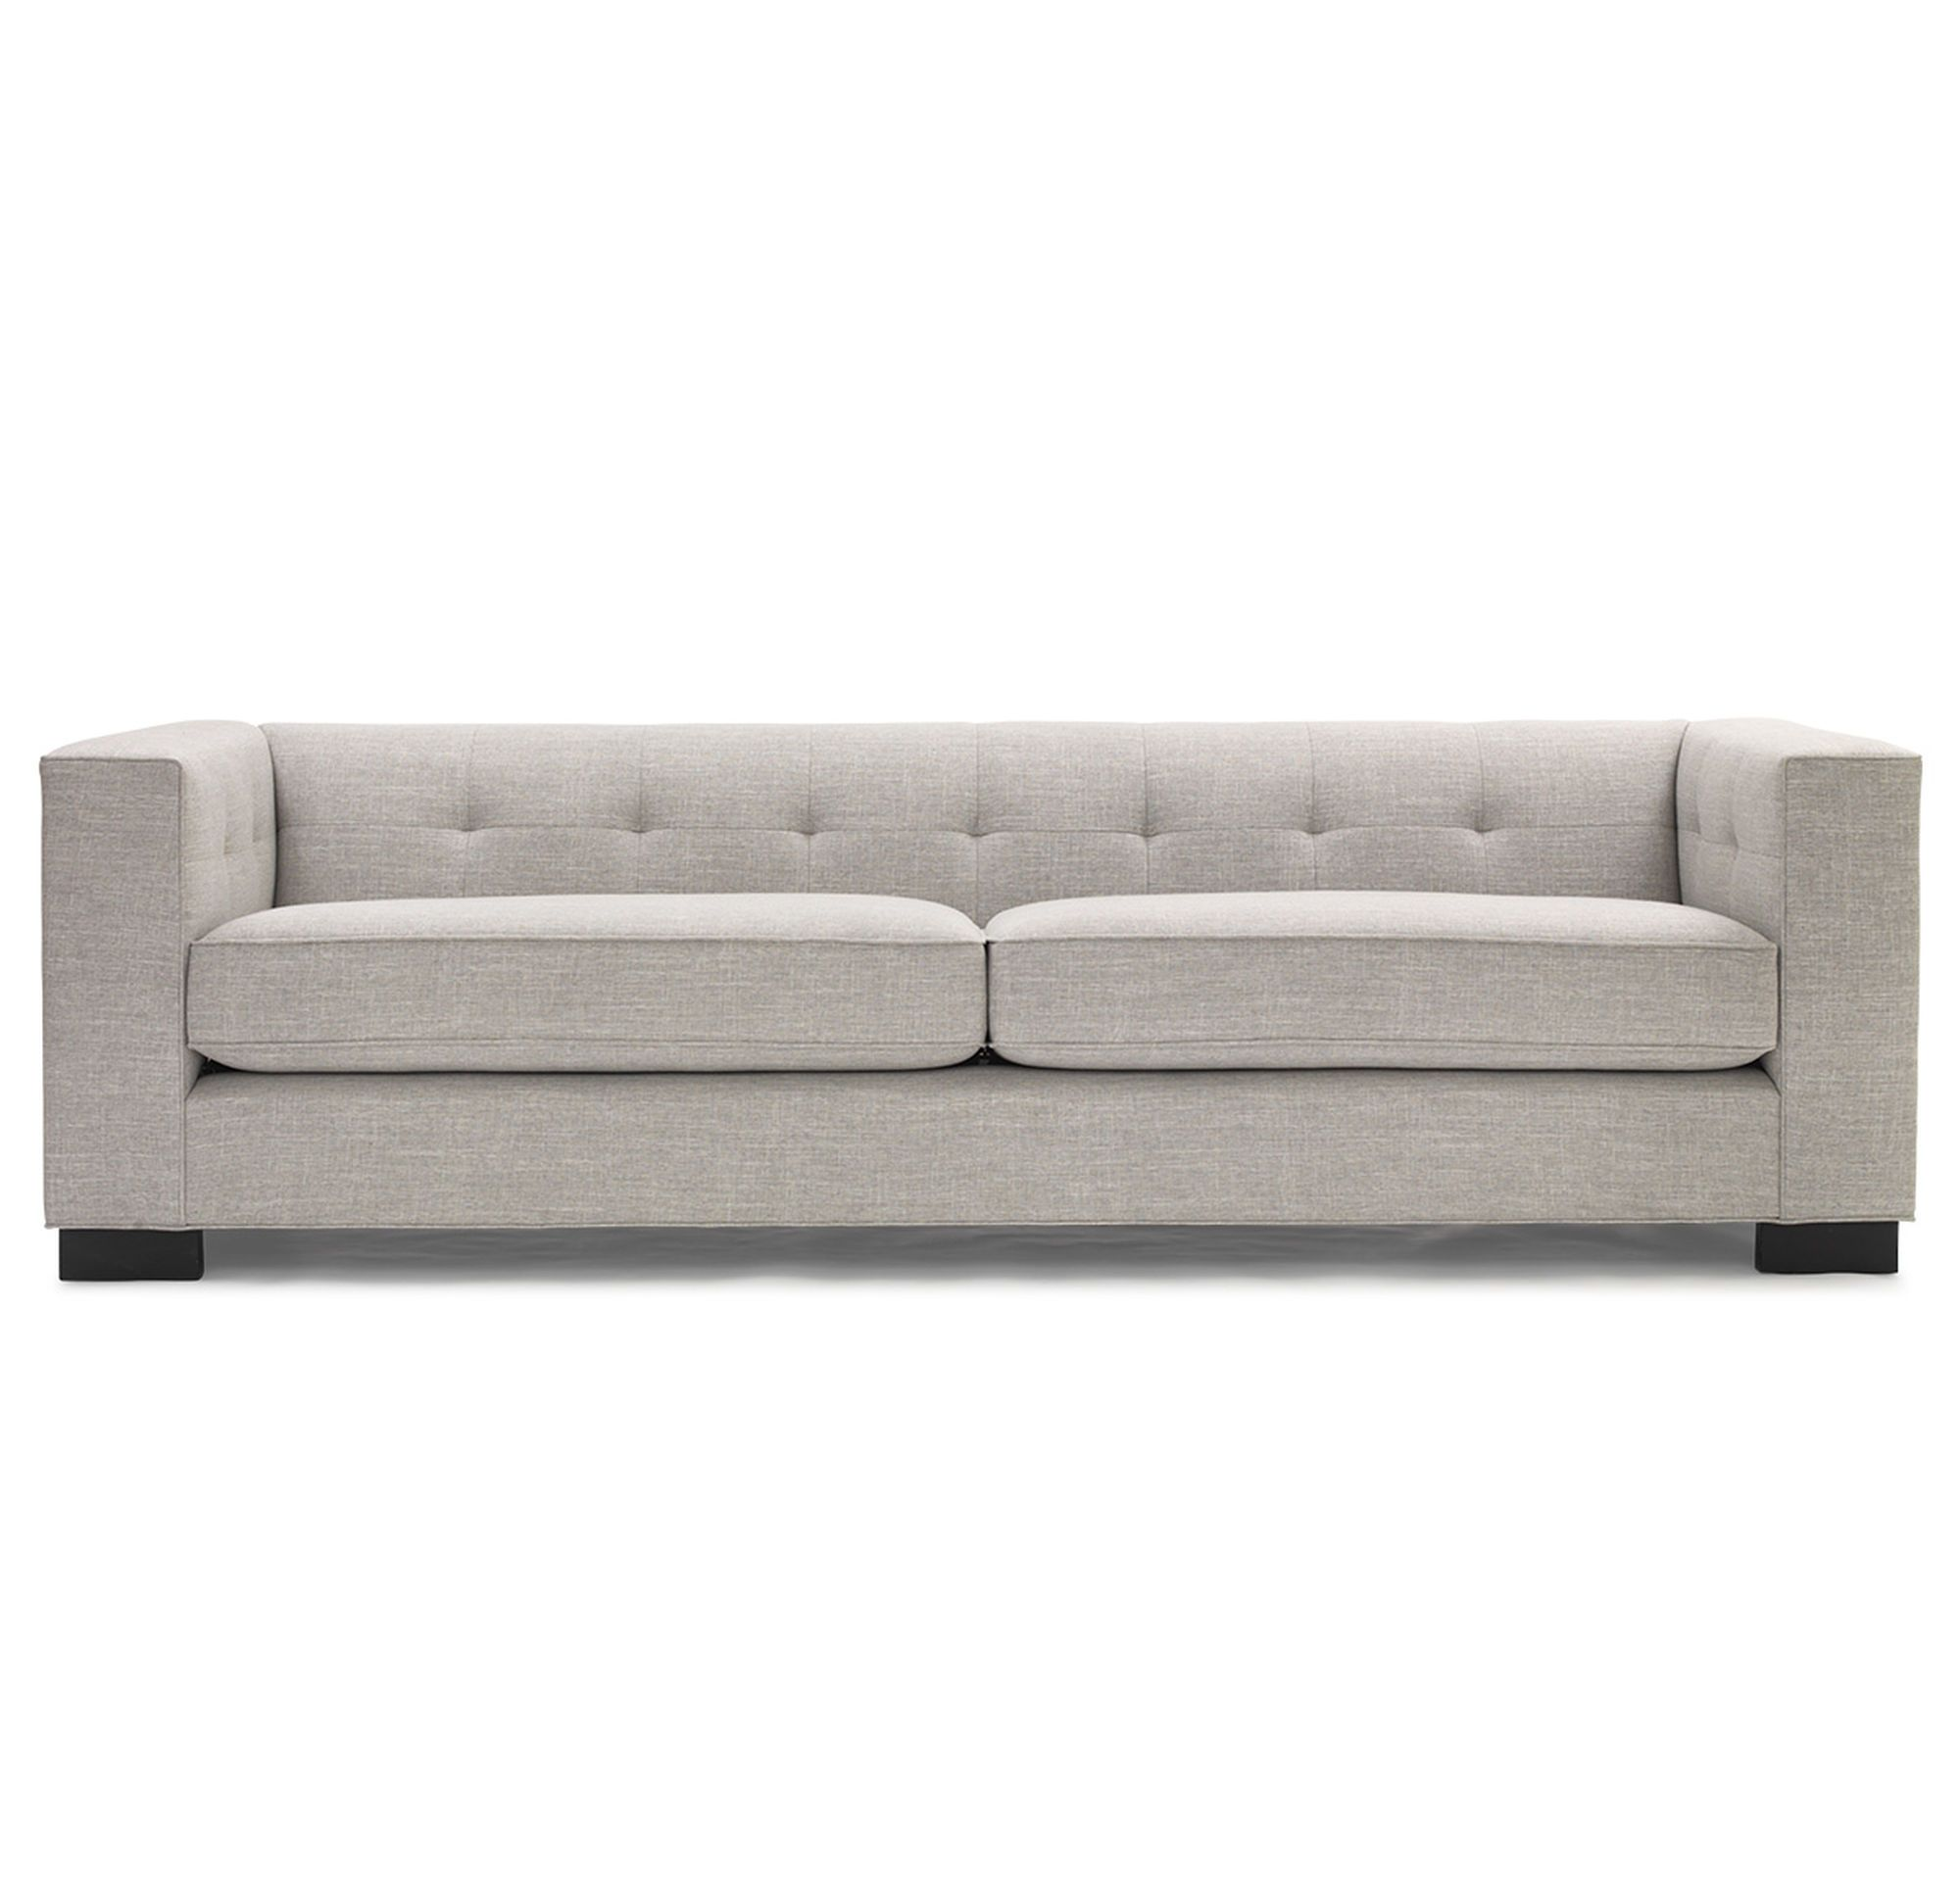 Amazing Bronson Sofa Nuance Dove Hi Res Sofa Montana Gmtry Best Dining Table And Chair Ideas Images Gmtryco